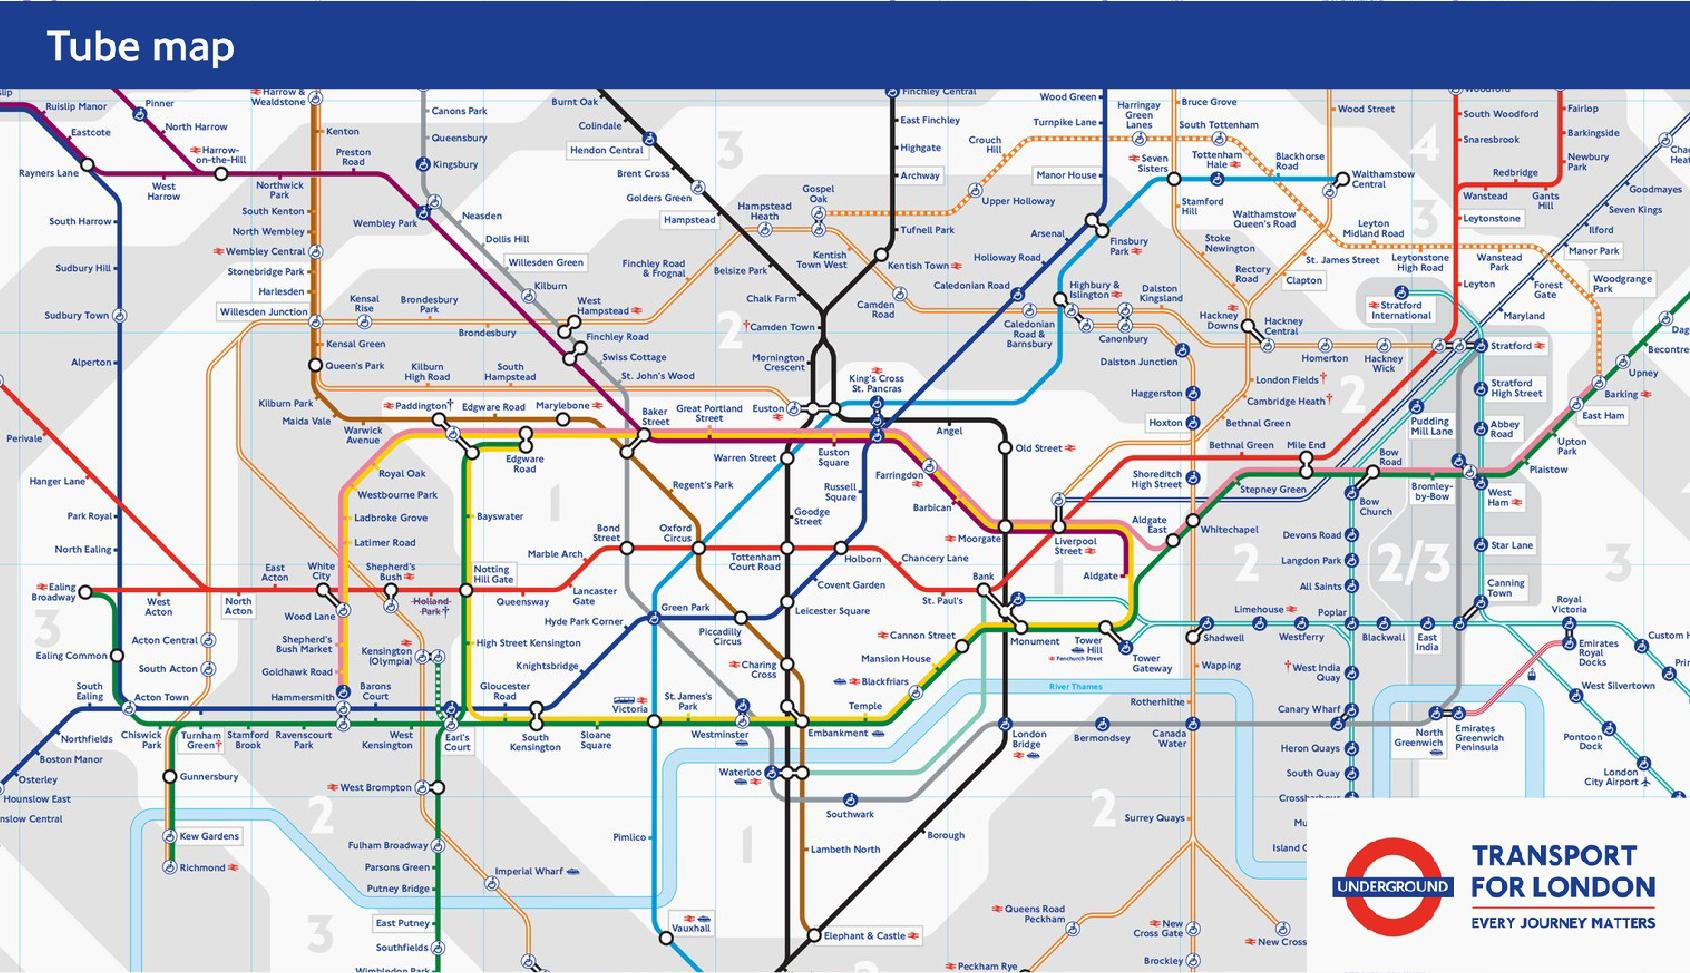 Navigational design mimics public transportation systems, like the London Underground.